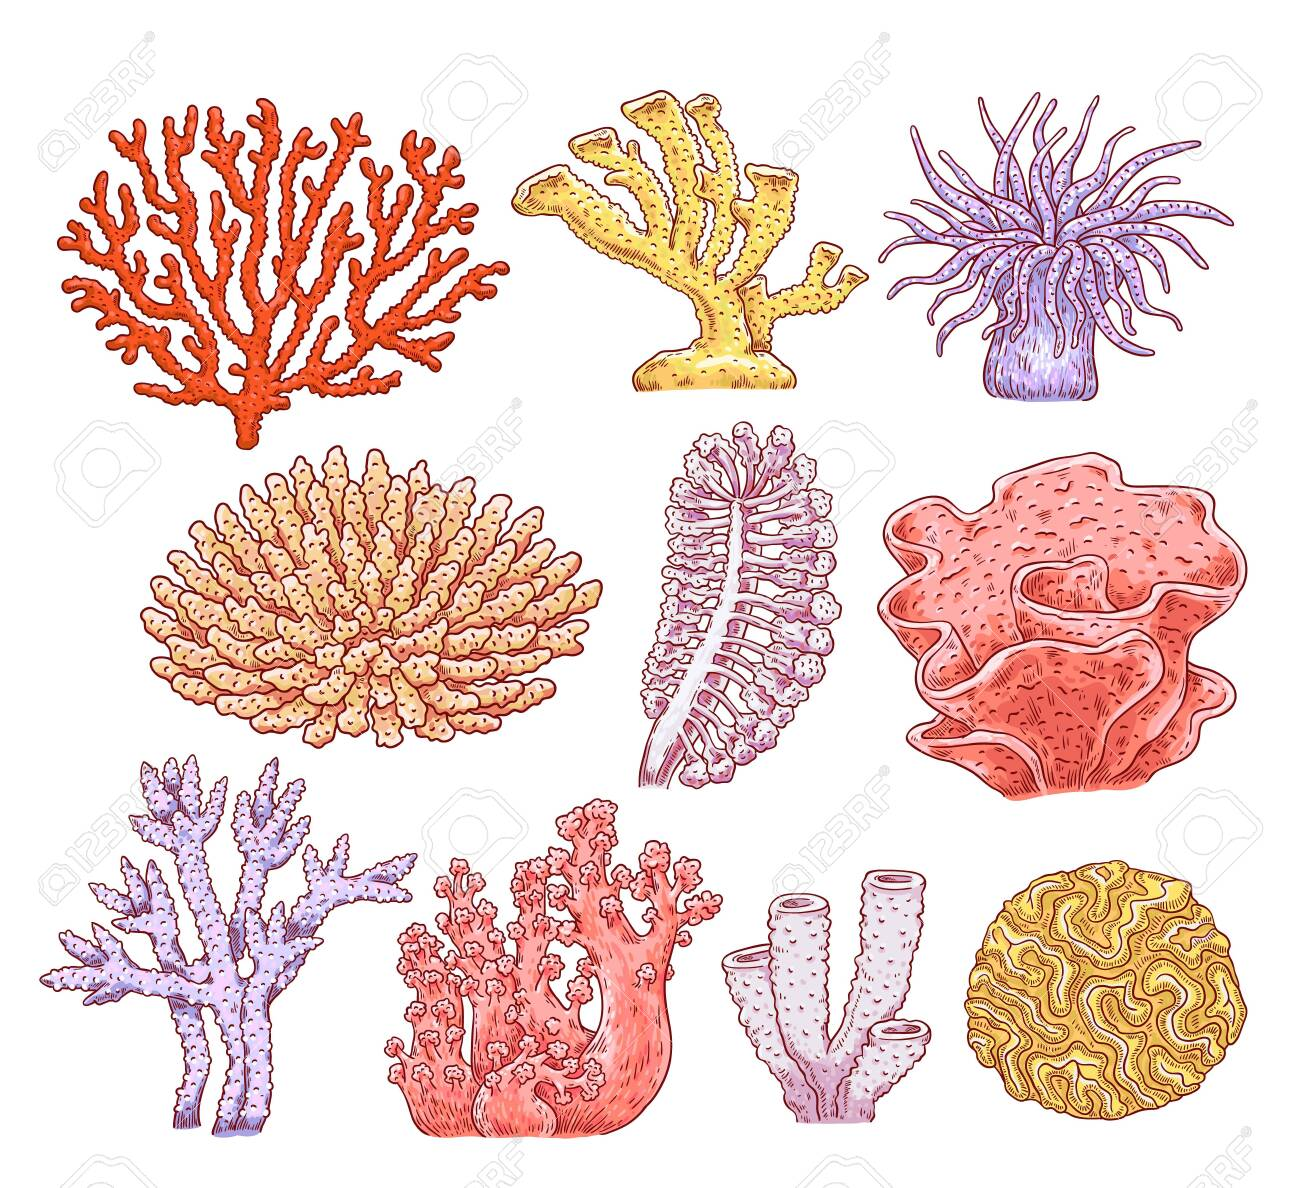 Set of various types of corals, aquarium underwater spongy plants and animals. Ocean marine underwater collection of flora and fauna. Hand drawn vector sketch illustration of sea corals. - 124419741